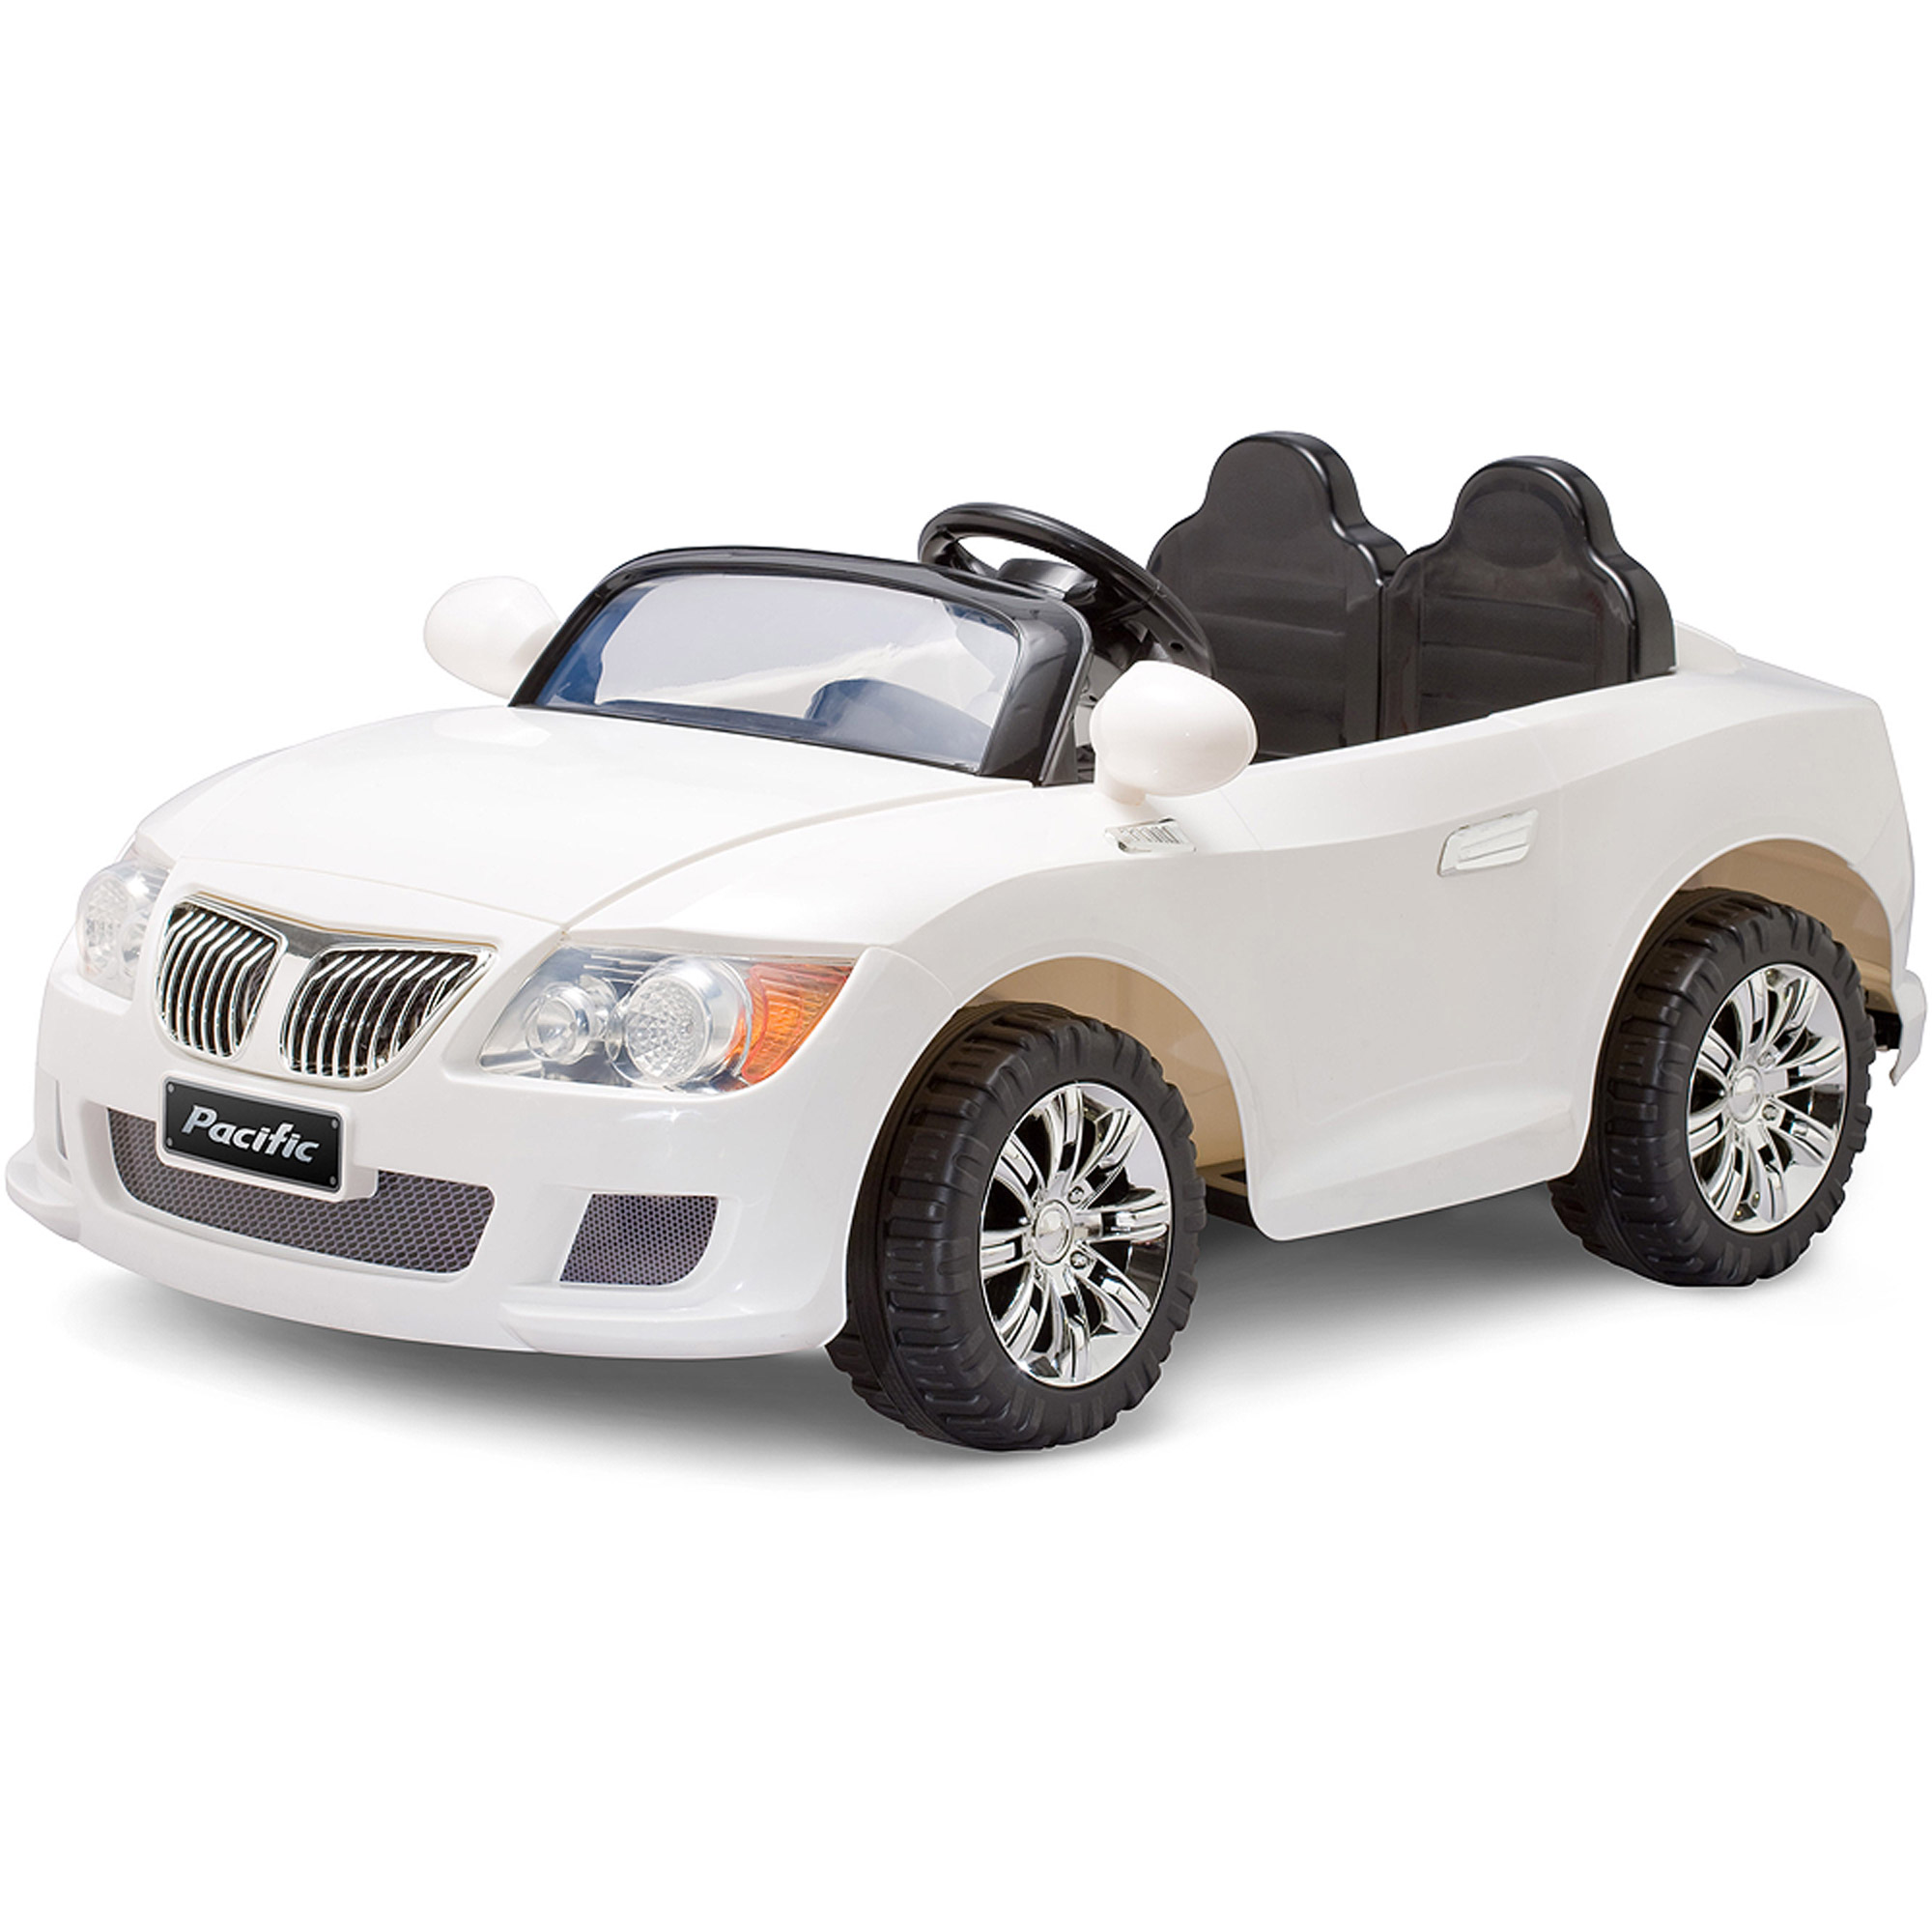 Pacific Cycle 12-Volt Battery-Powered Convertible Sports Car, White